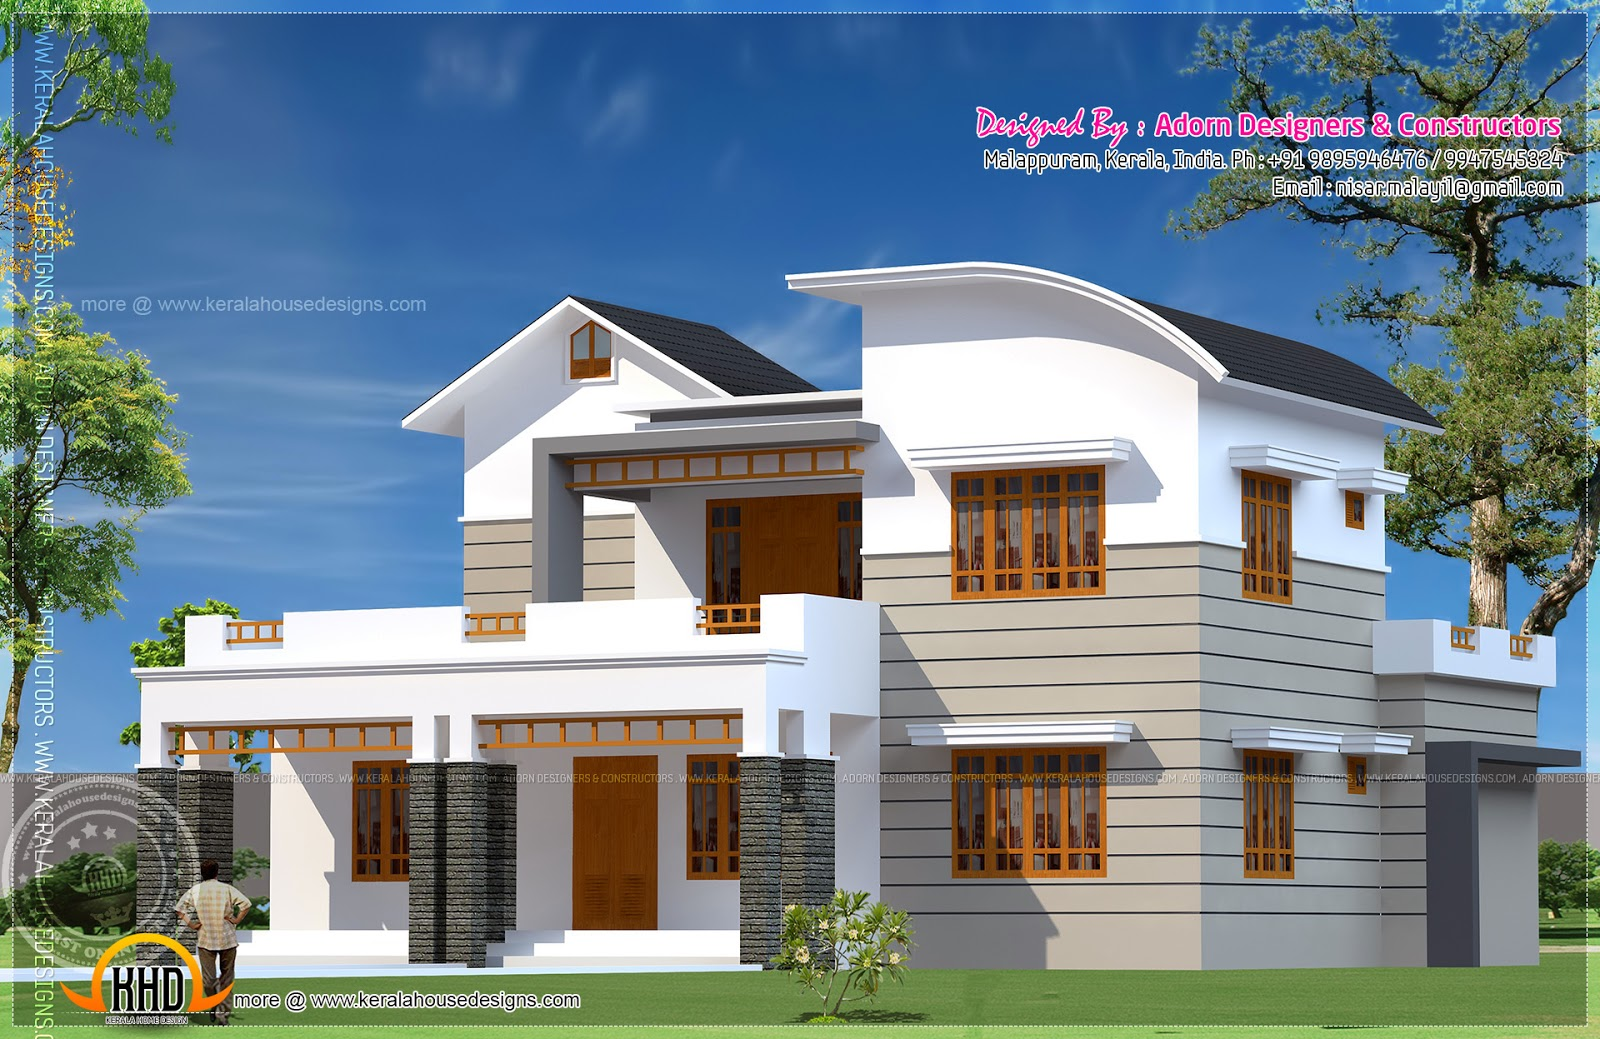 bedroom house exterior indian house plans compact dream house bedroom iroonie